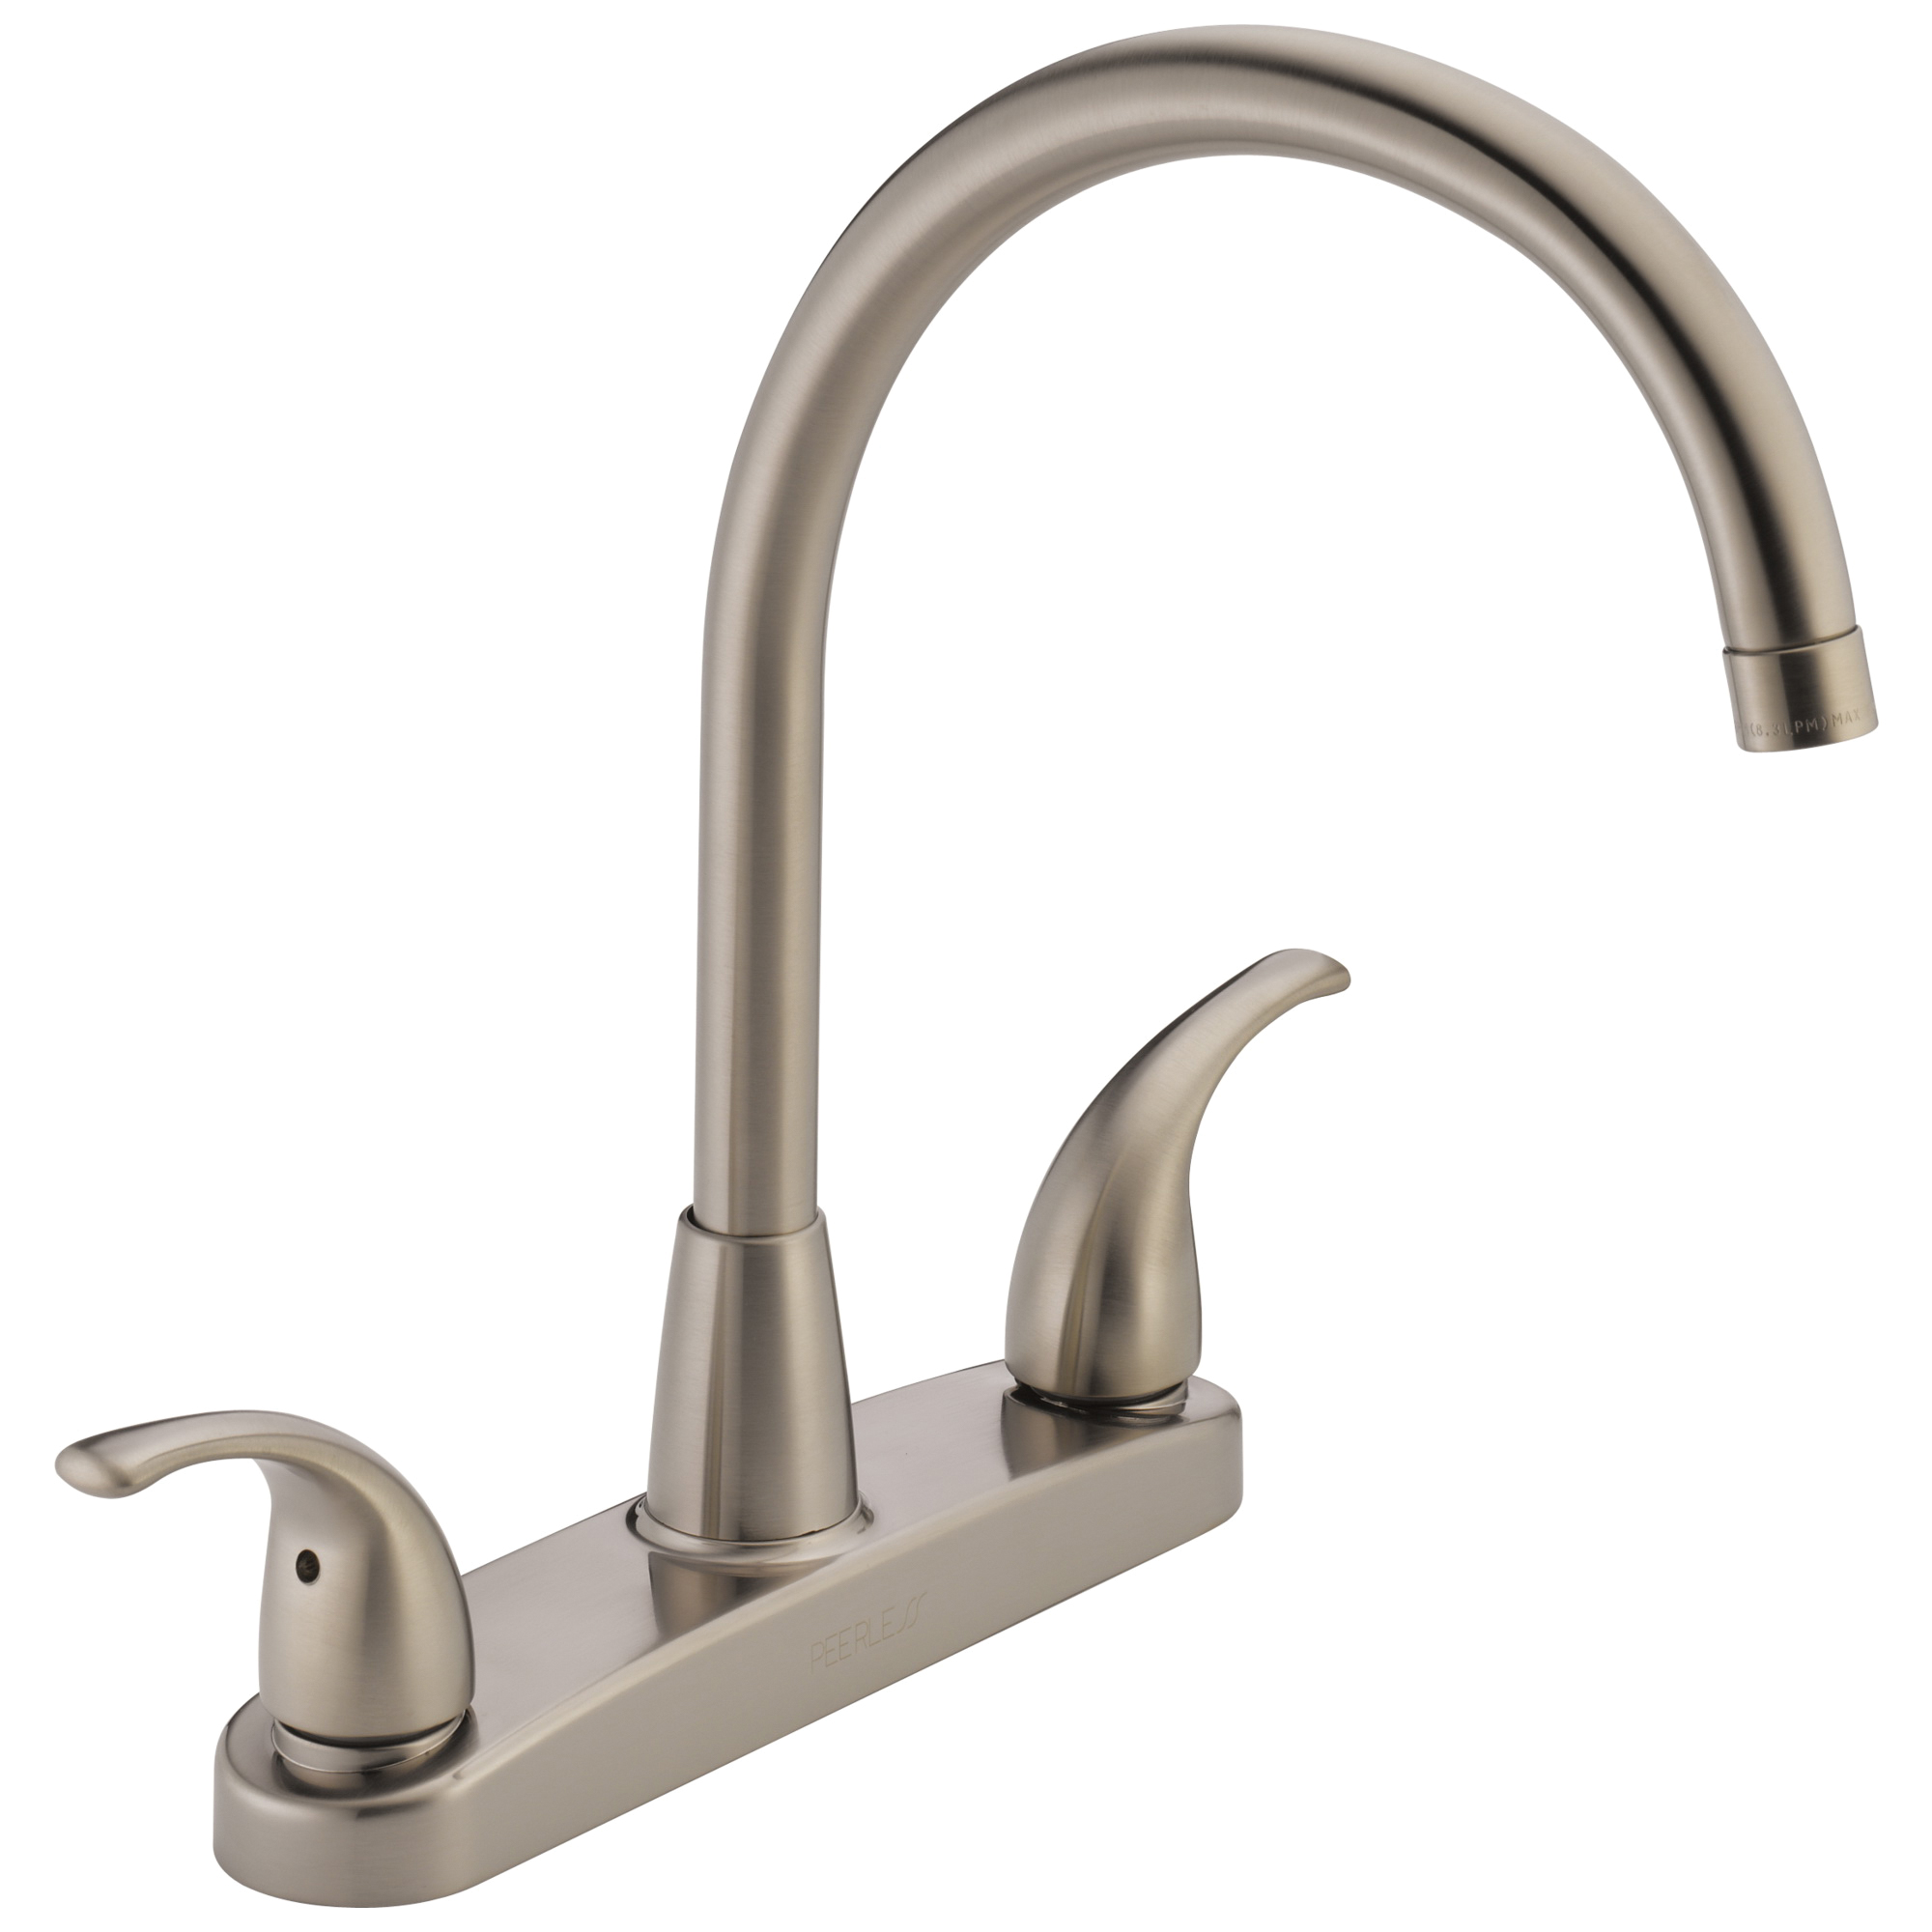 Peerless® P299568LF-SS Choice Kitchen Faucet, 1.8 gpm, 8 in Center, 2 Handle, Chrome Plated, Import